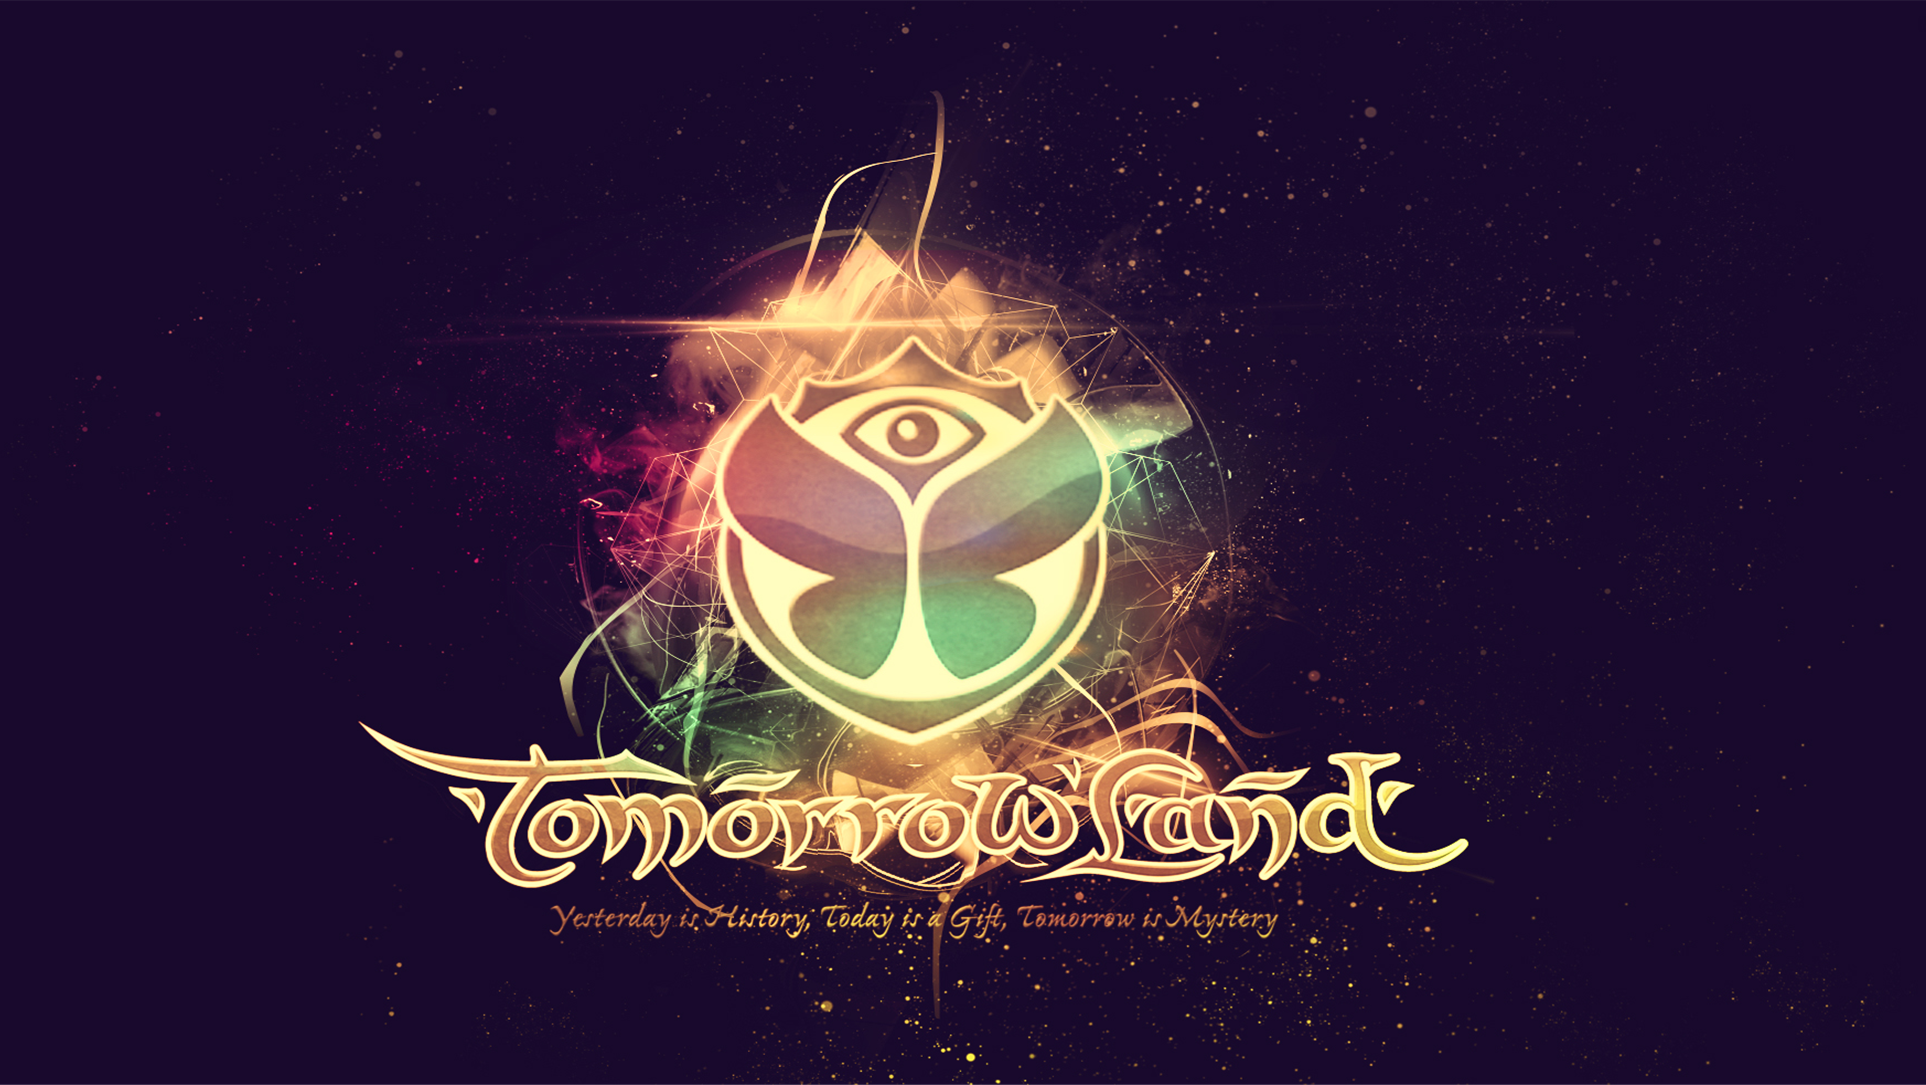 tomorrowland wallpapers - Αναζήτηση Google | Tomorrowland ...